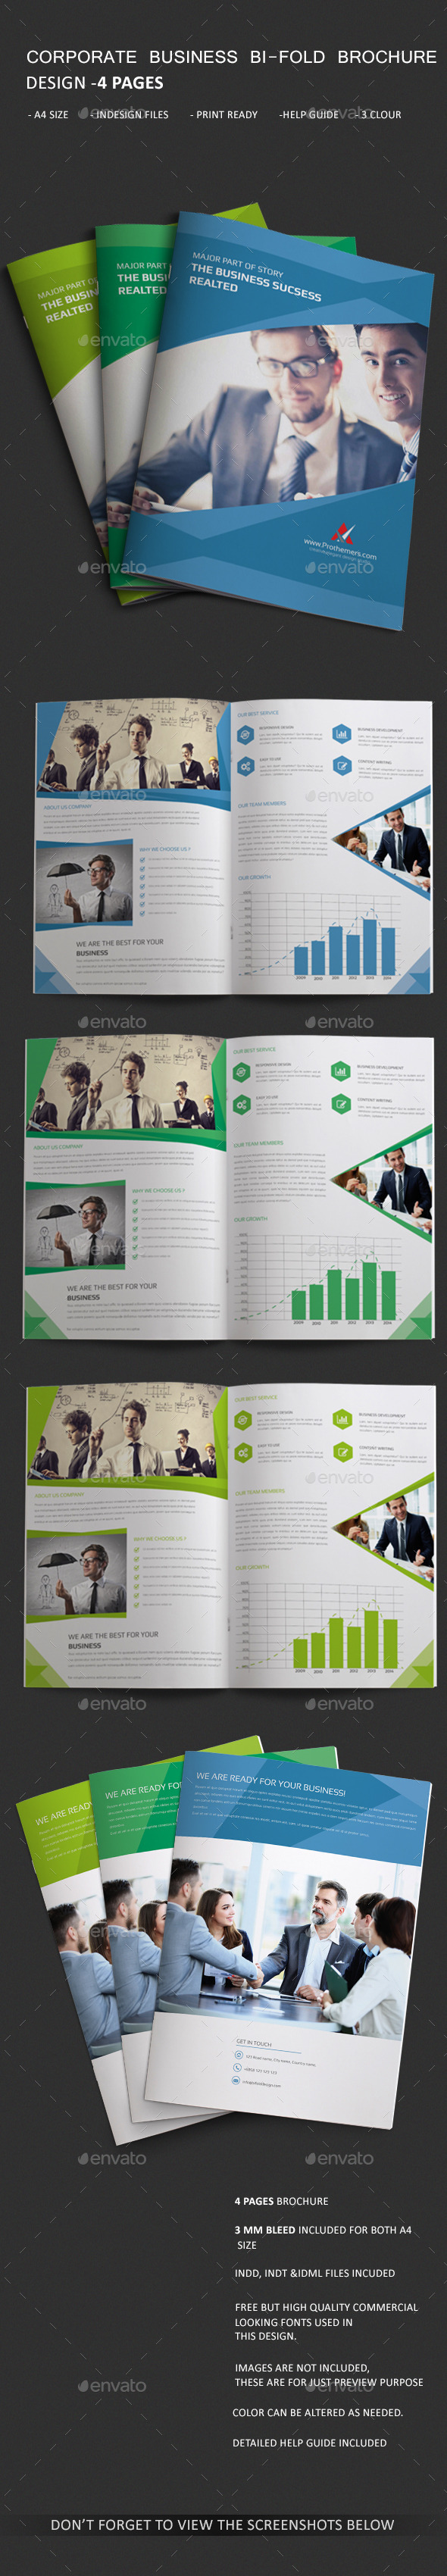 GraphicRiver Corporate Bi-fold Brochure 11171159